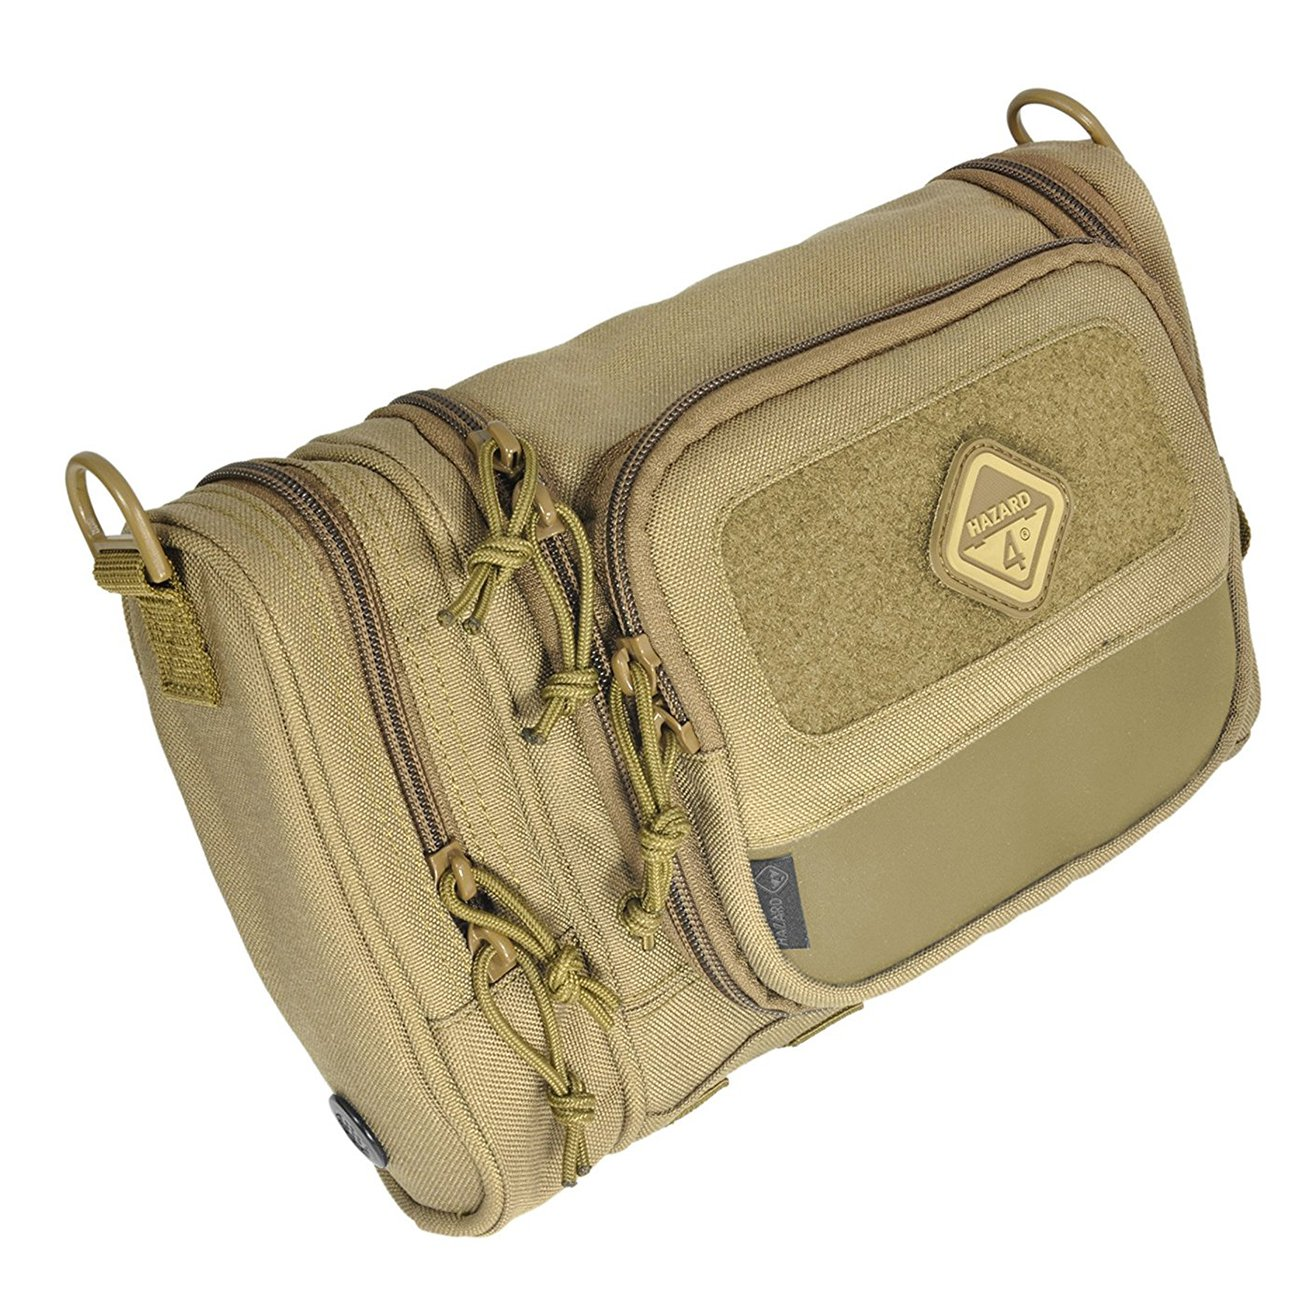 Hazard 4 RVL-CRD-CYT Reville Heavy Duty Grooming Camping Toiletry Bag Kit, Tan